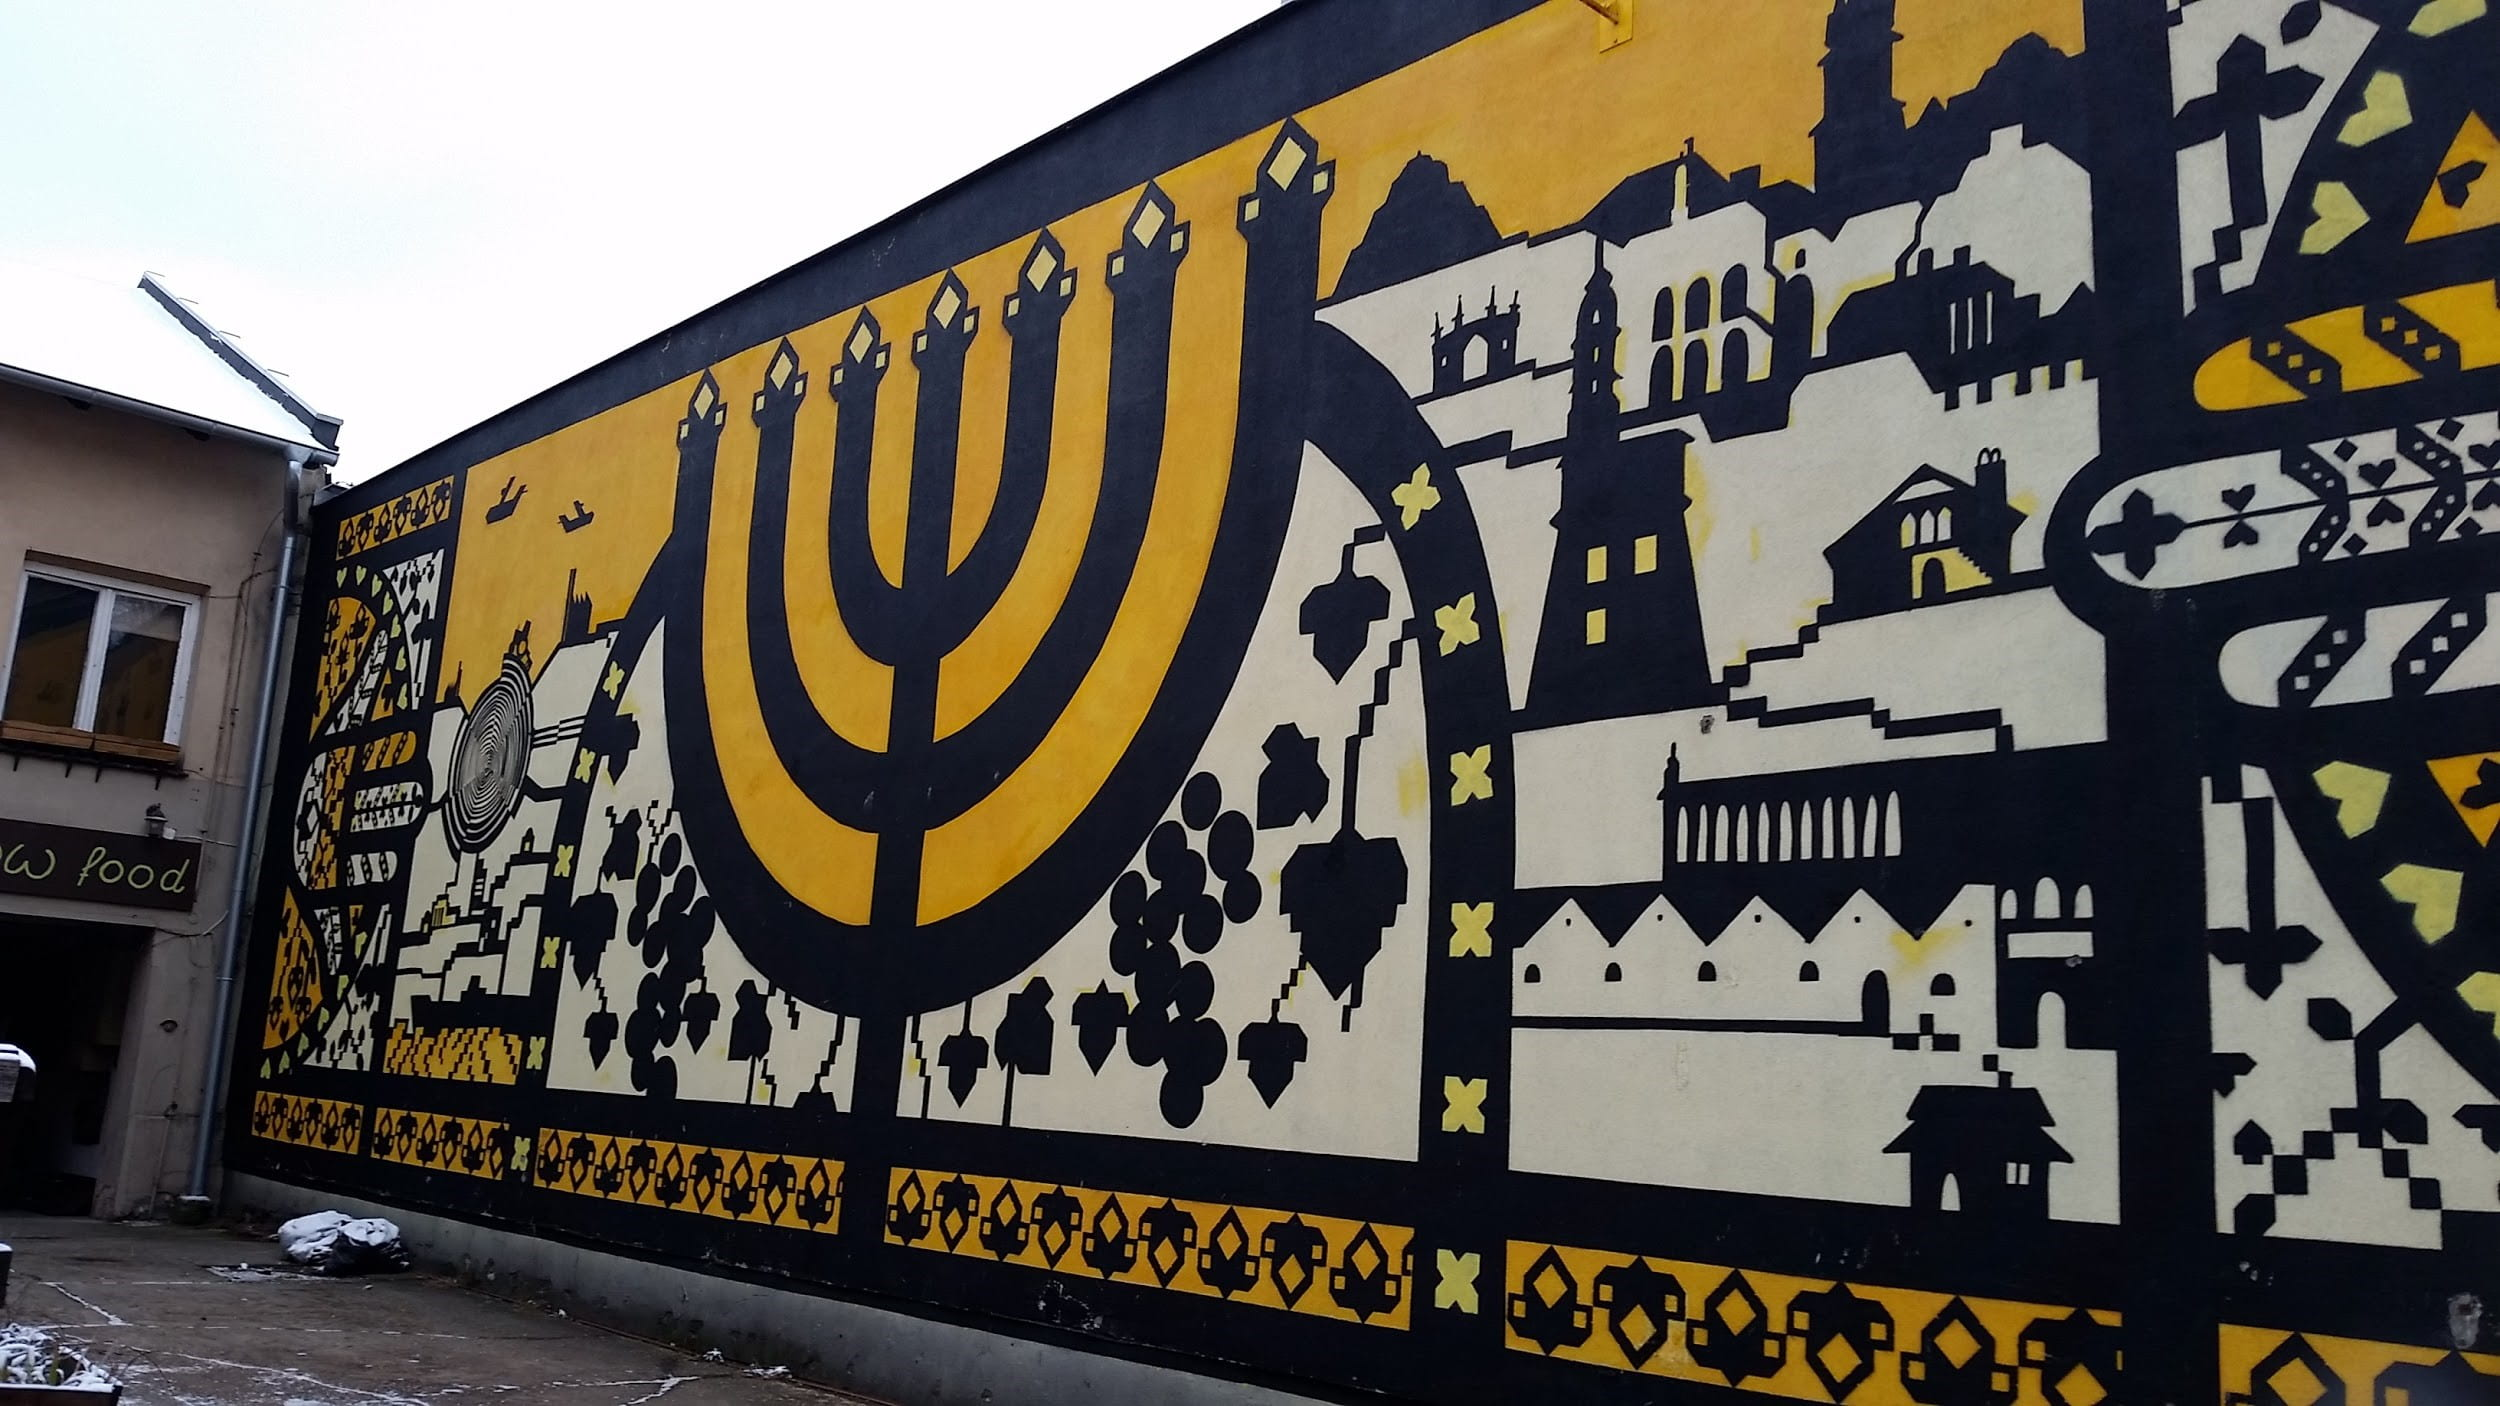 Black white and yellow mural